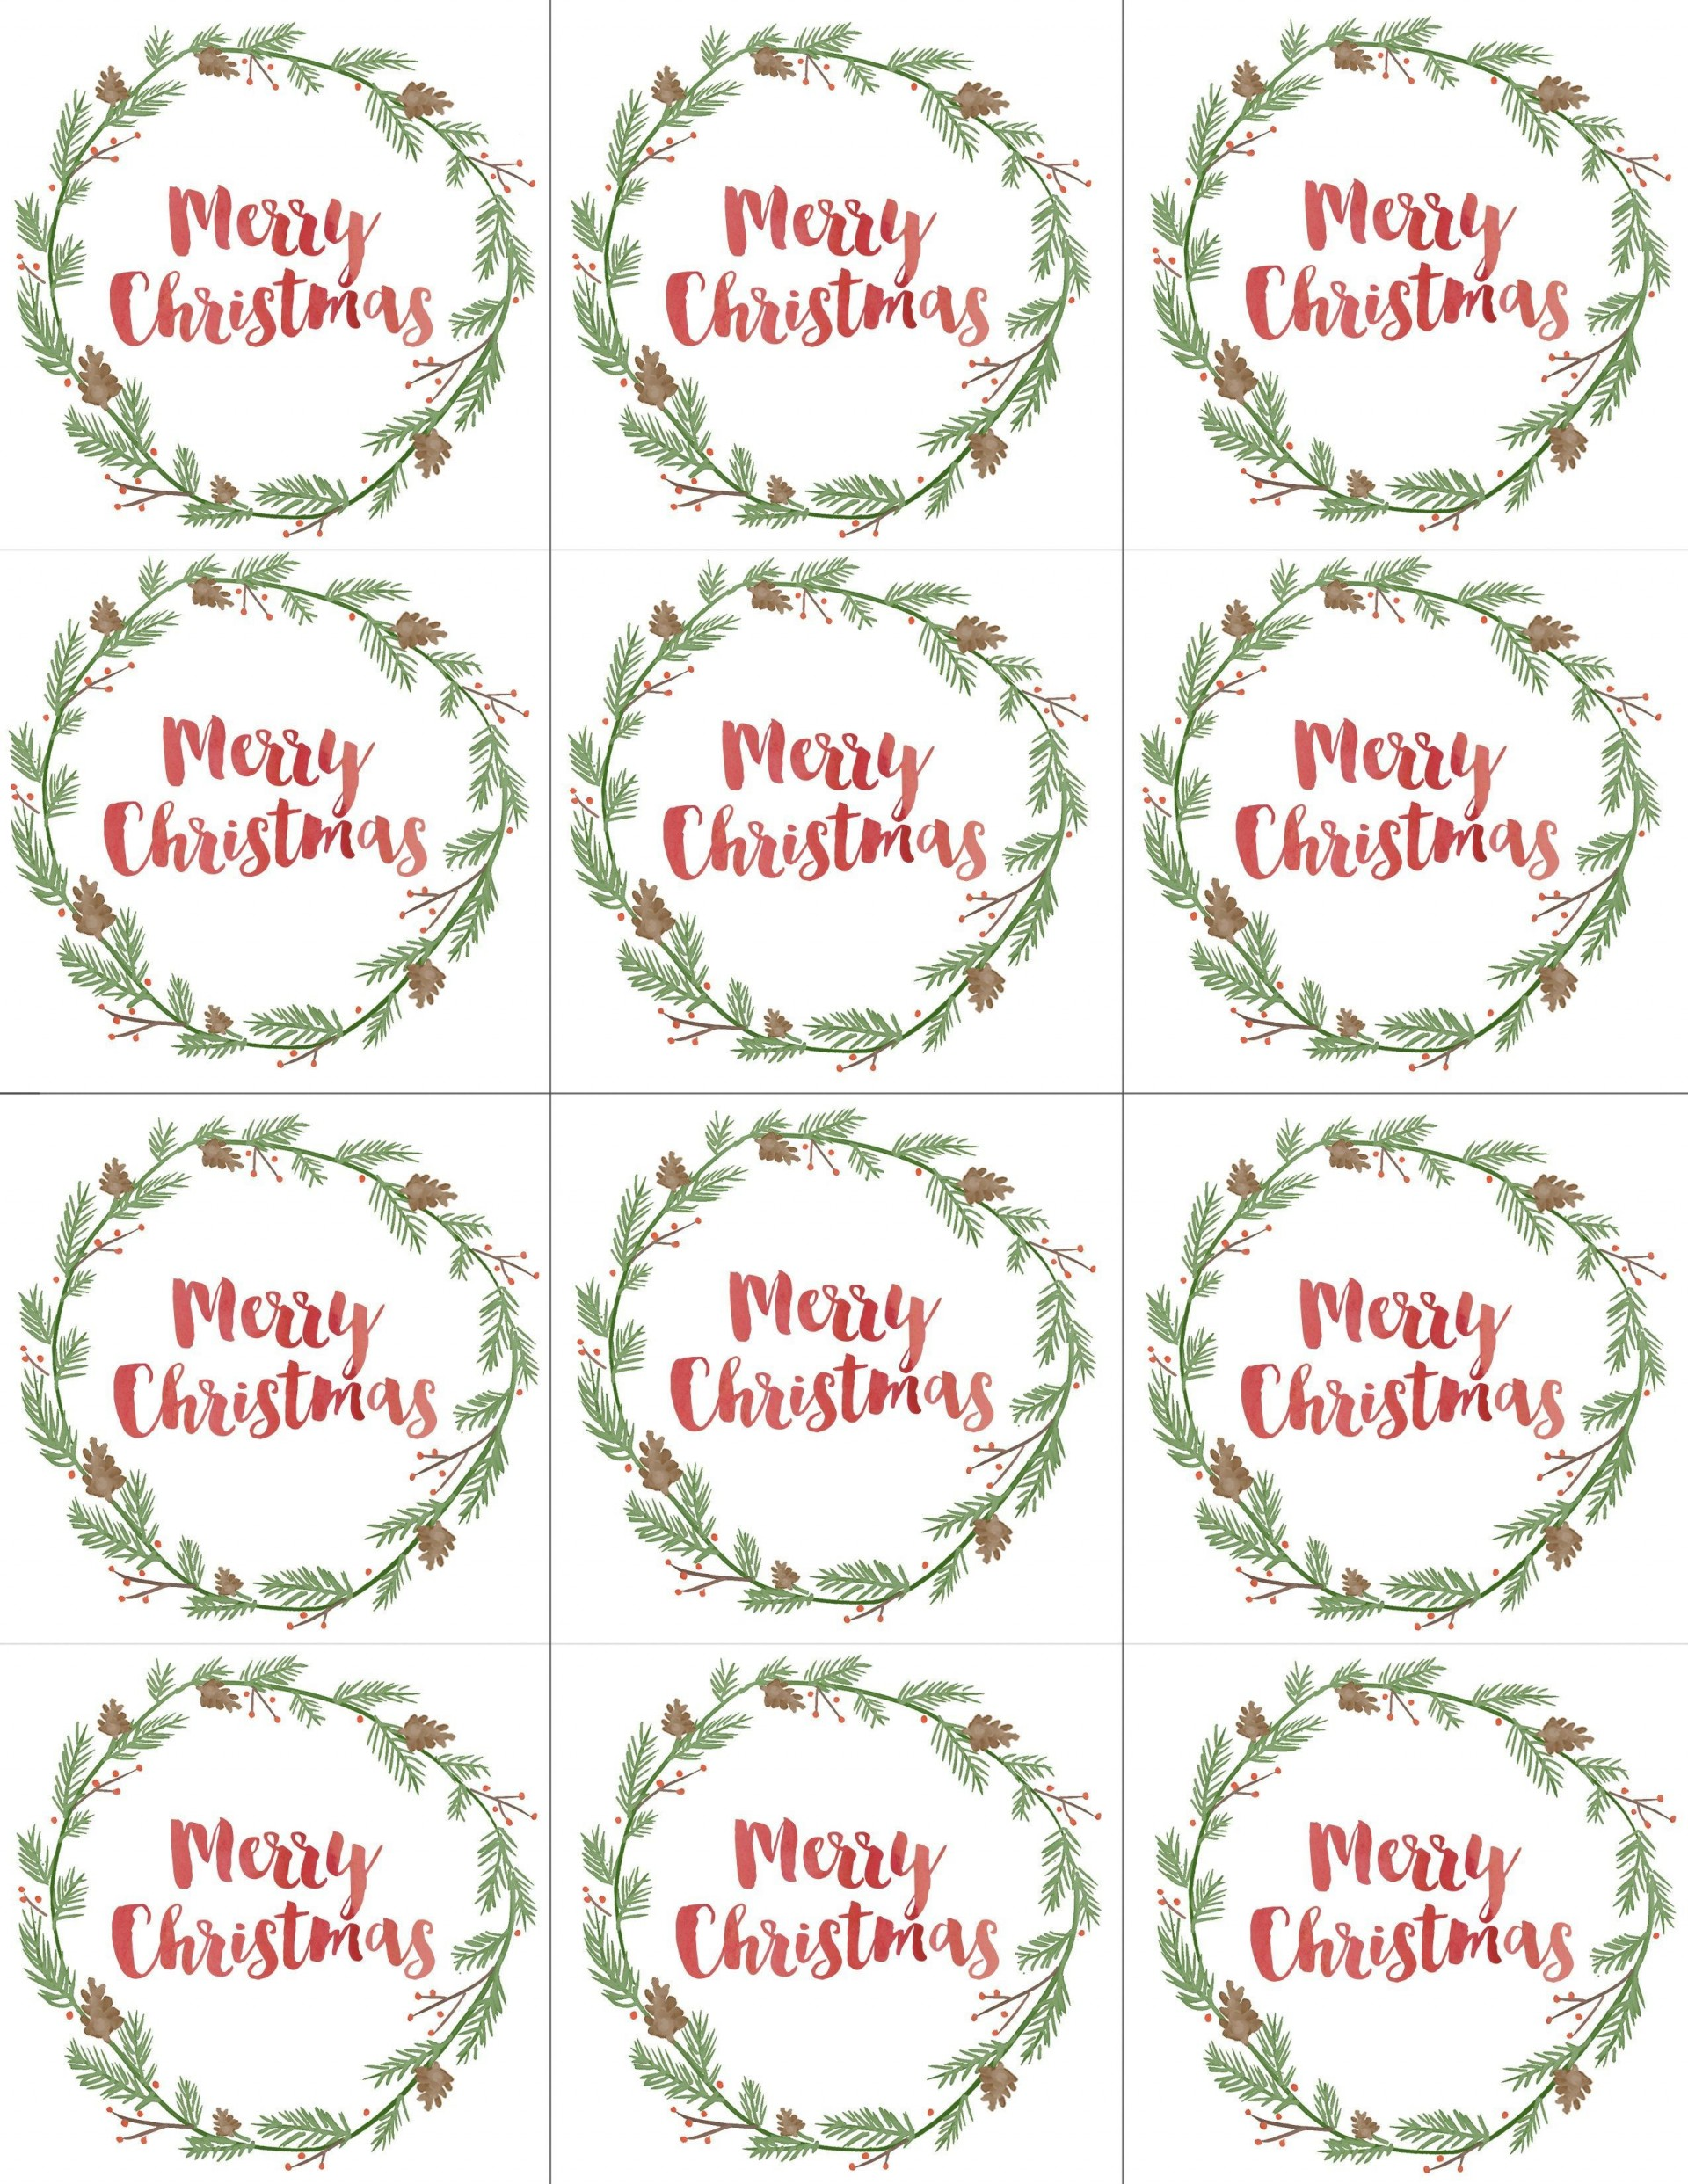 003 Unbelievable Printable Christma Gift Tag Template Concept  Templates Free Holiday For Word1920